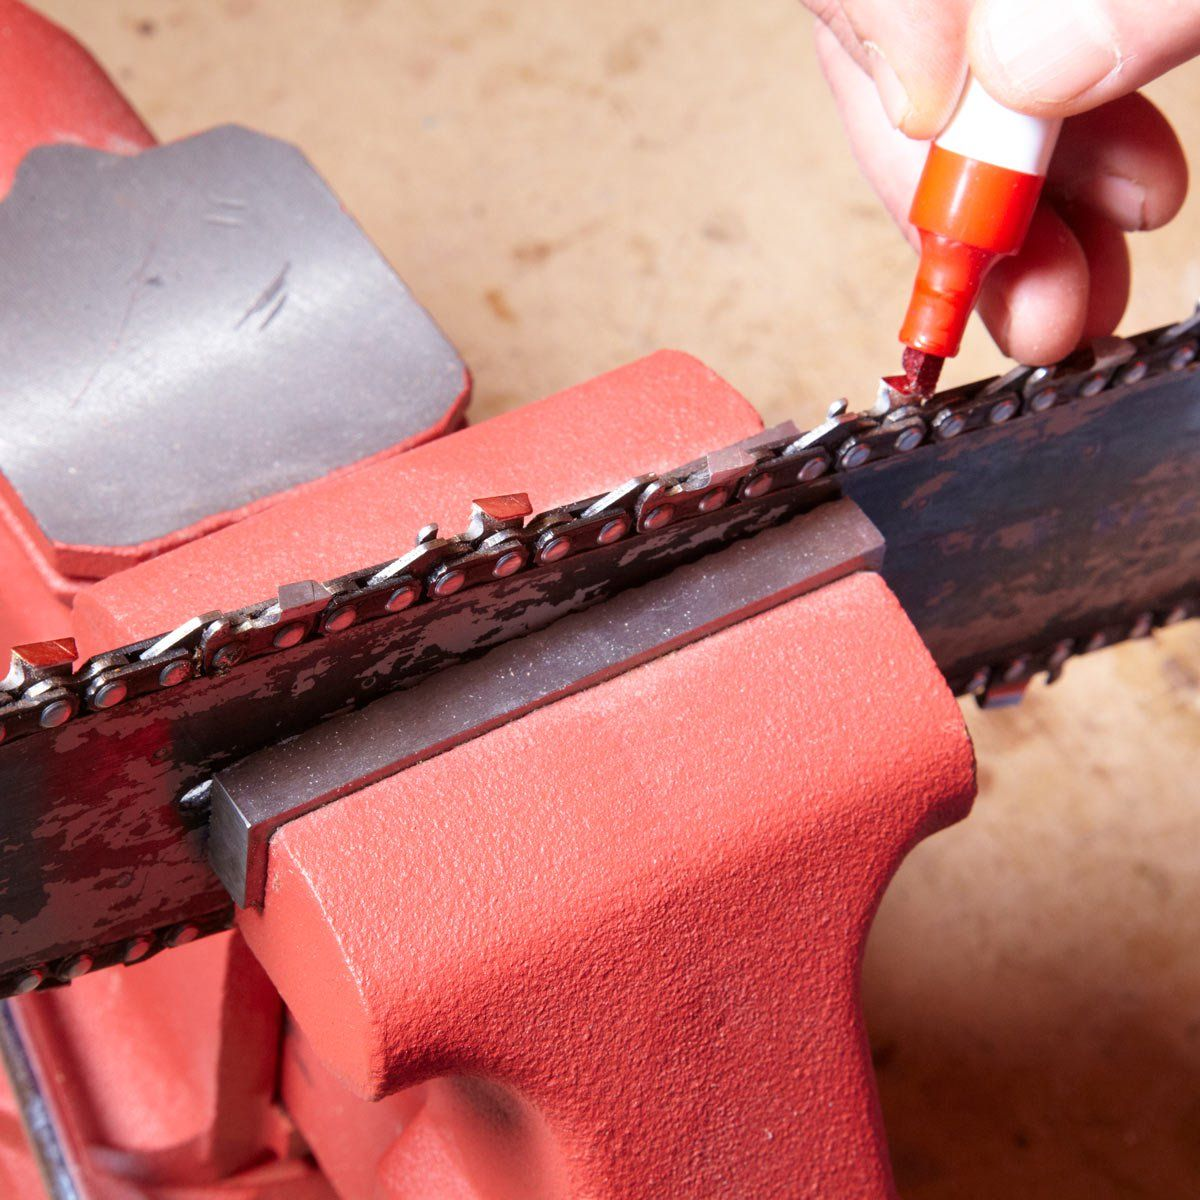 Chain saw sharpening made easier saw sharpening